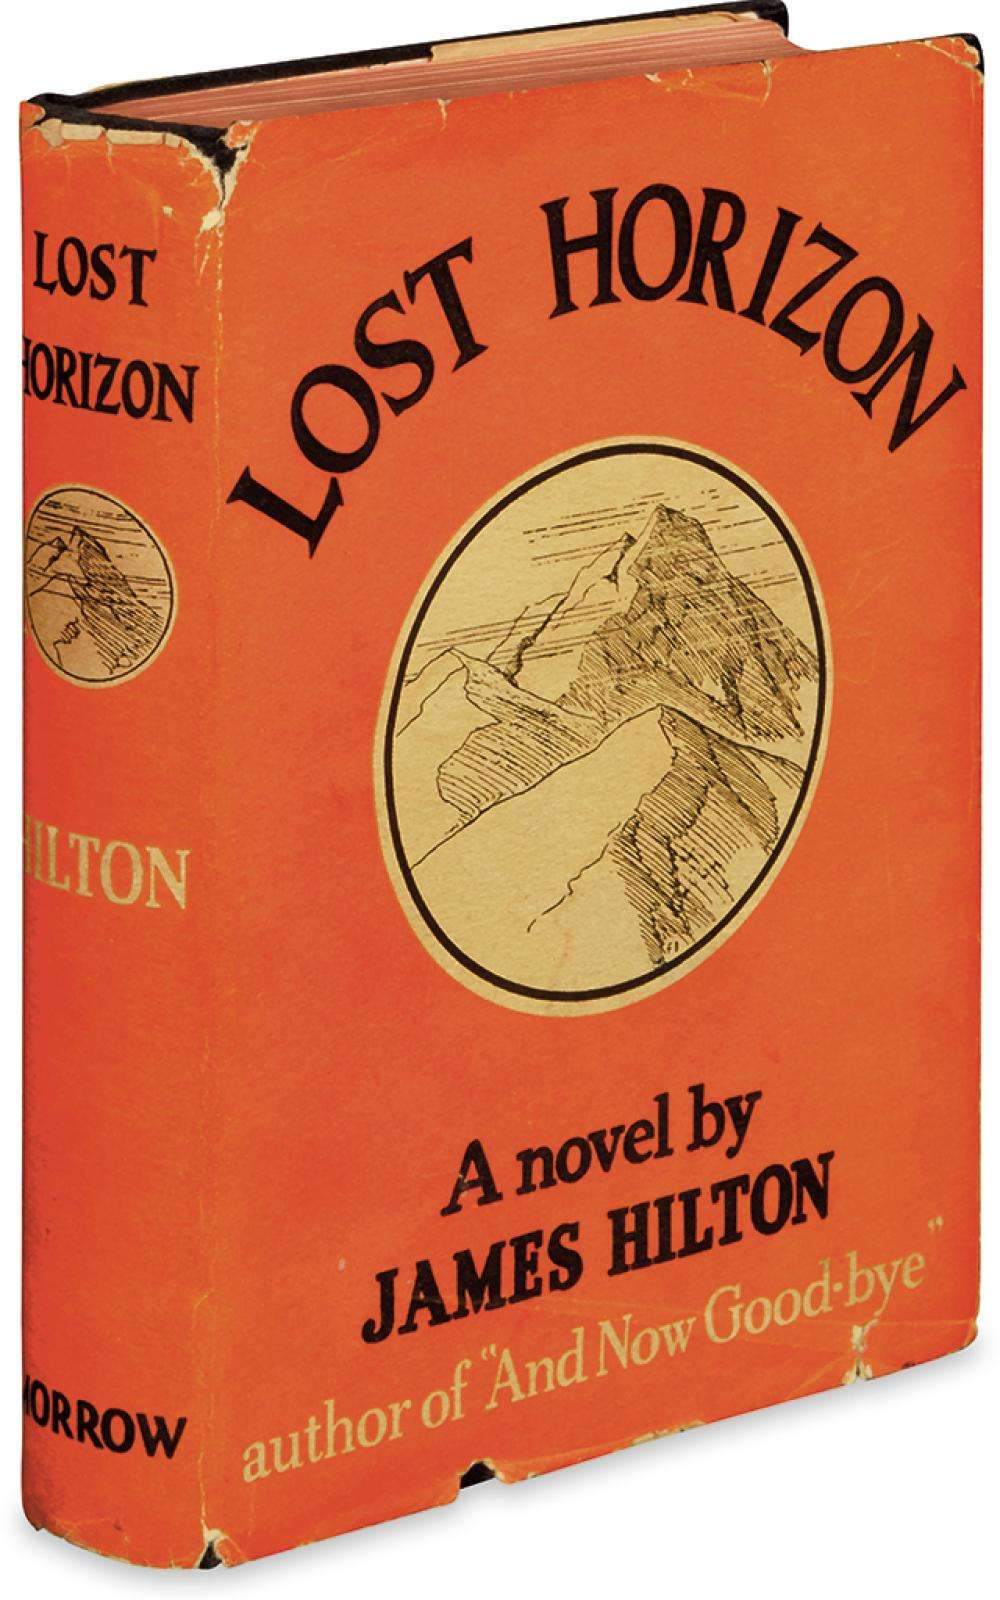 HILTON, JAMES. Lost Horizon.